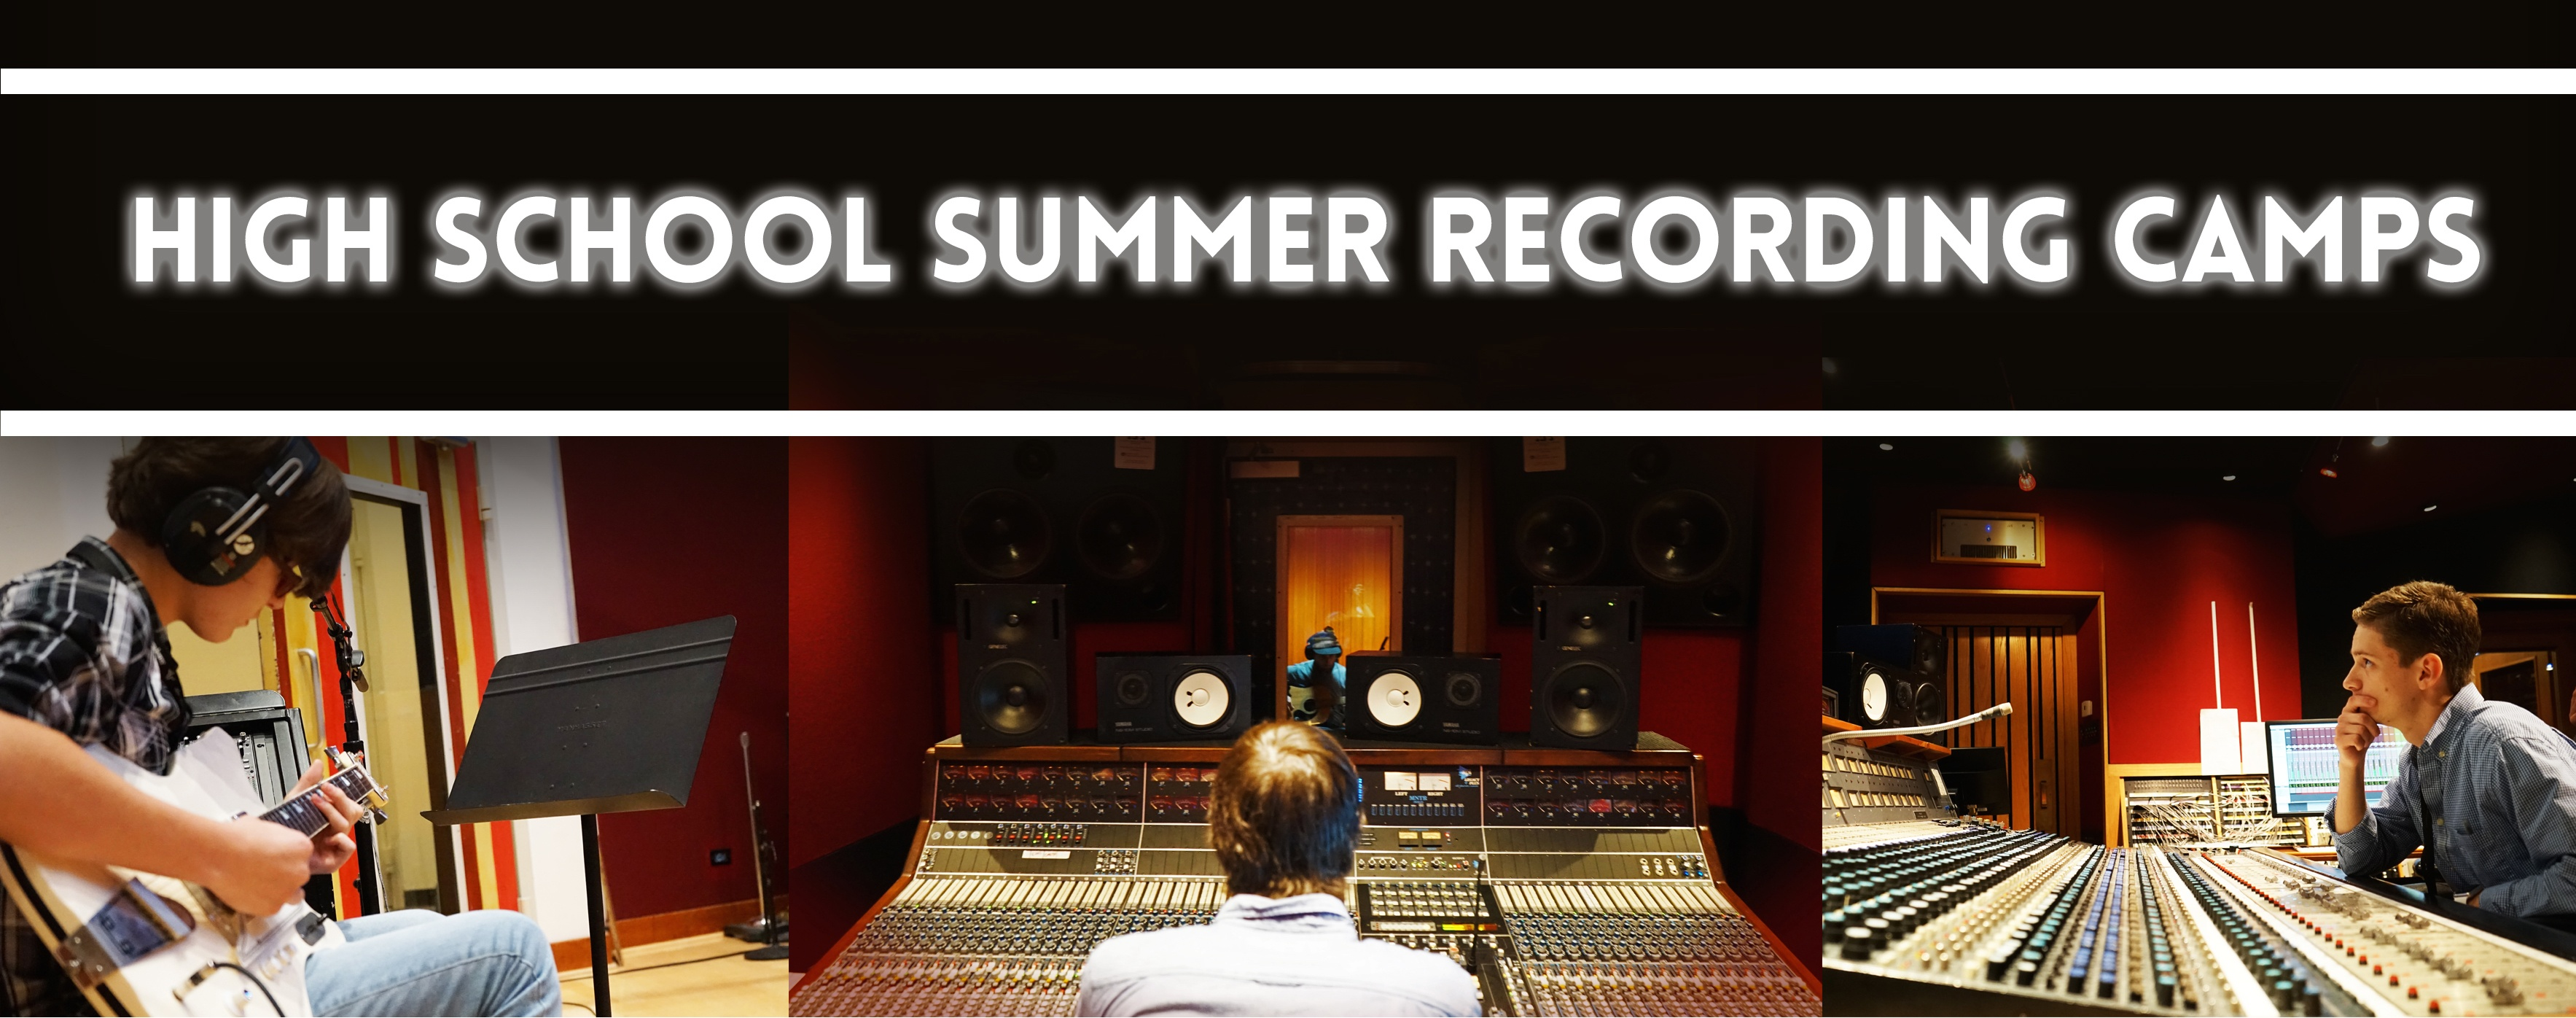 High School Summer Recording Camps